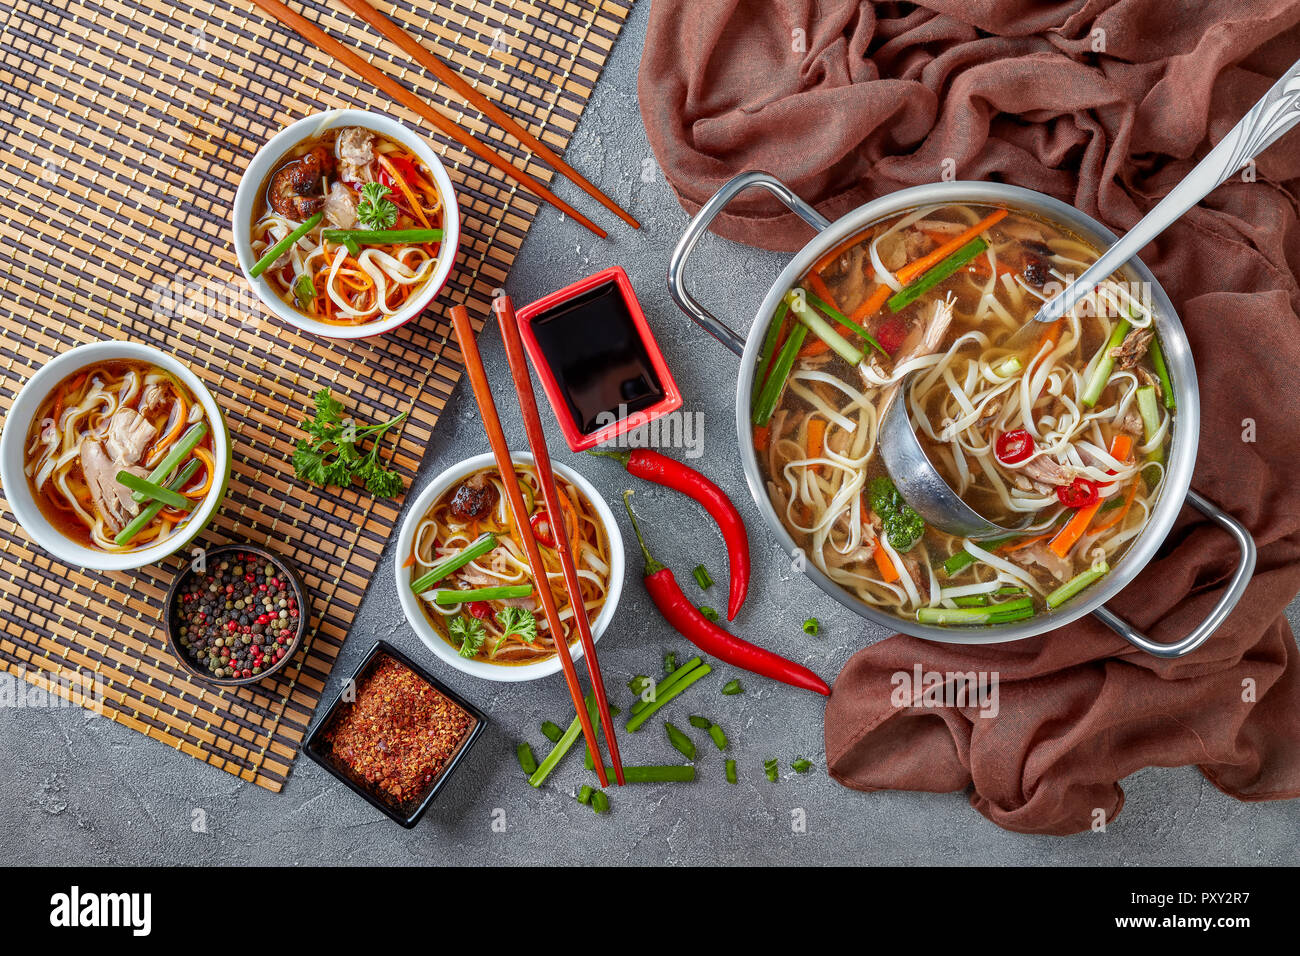 overhead view of poultry udon noodle vegetables soup in a metal casserole and served in bowls on bamboo mat with chopsticks, view from above, flatlay - Stock Image